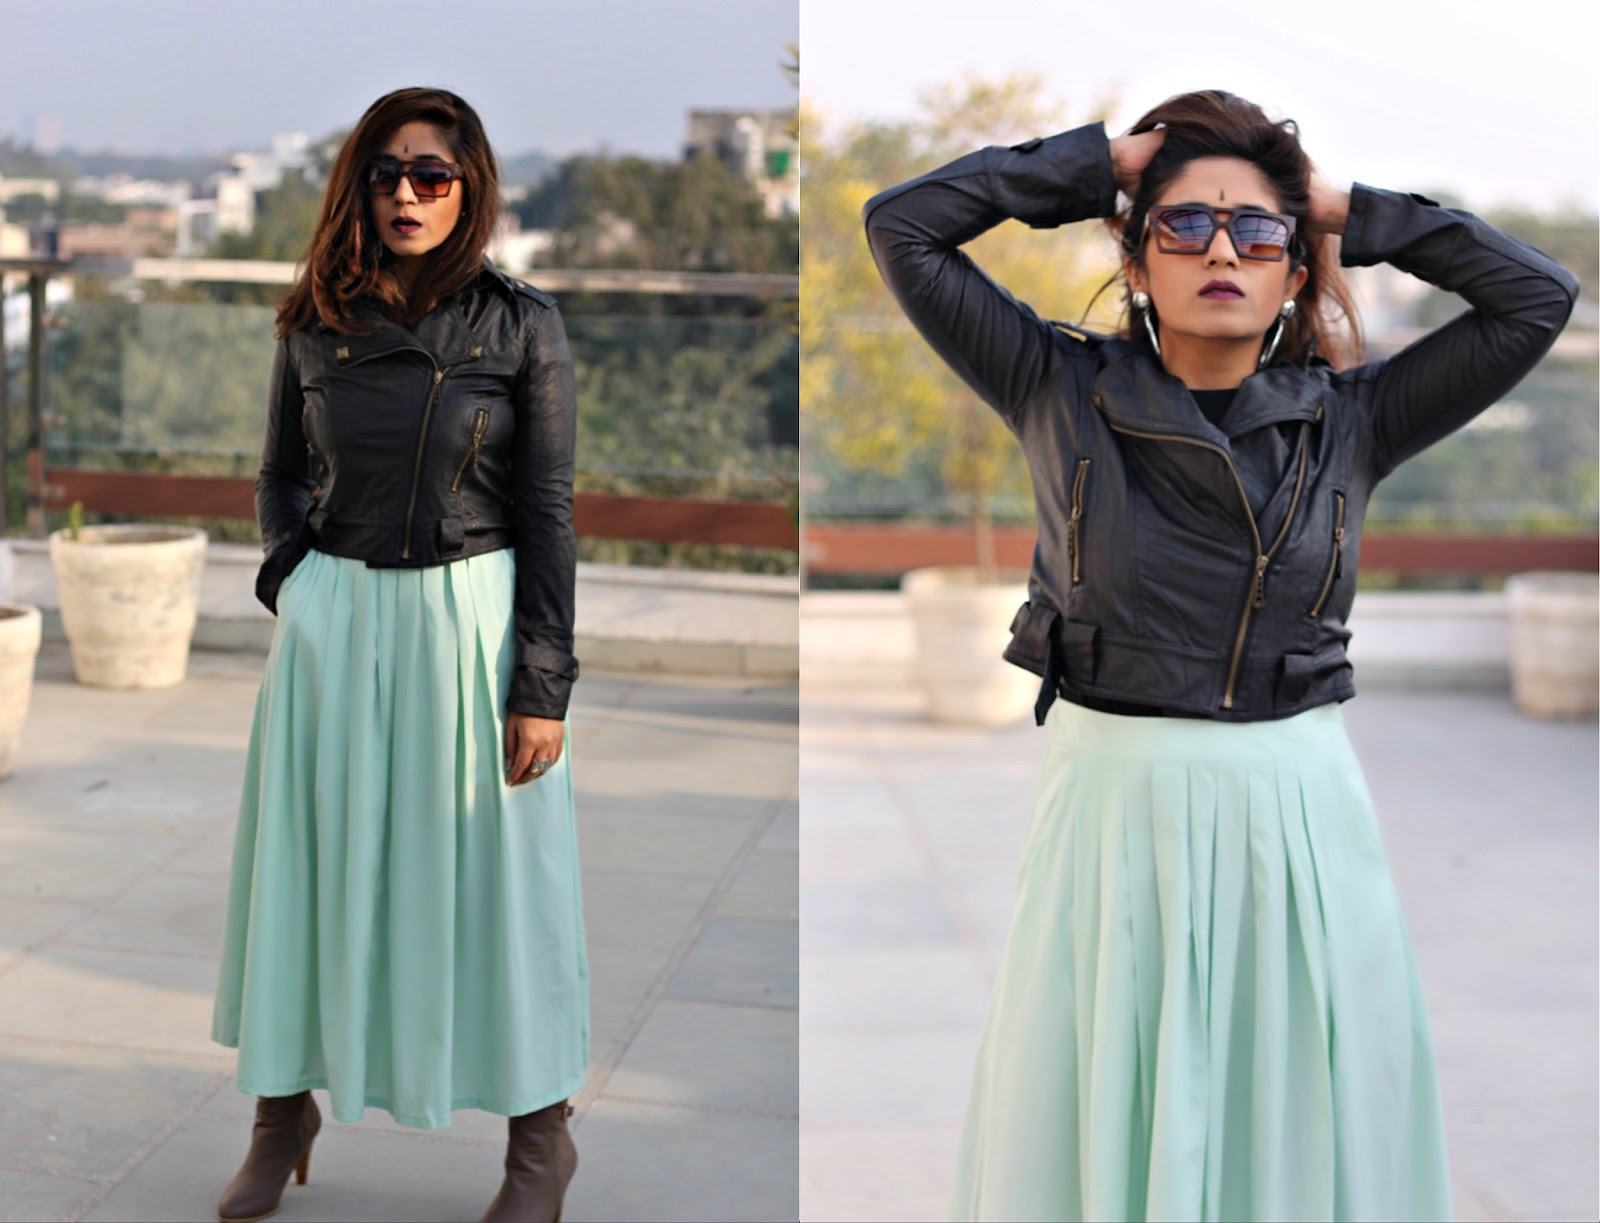 Most Influential Street Style Bloggers - Fashionista